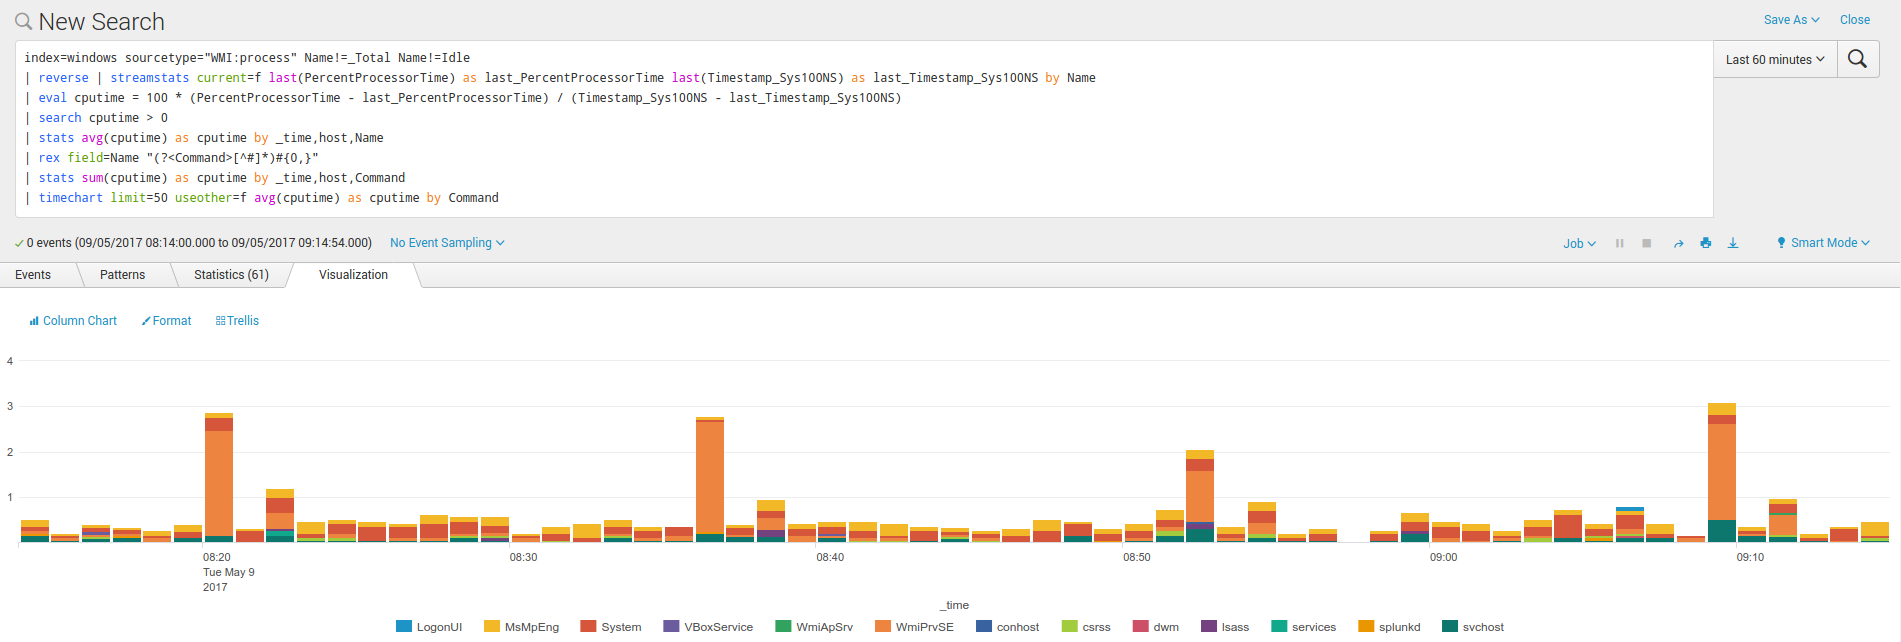 WINDOWS PERFORMANCE MONITORING TIPS WITH SPLUNK – Octamis blog